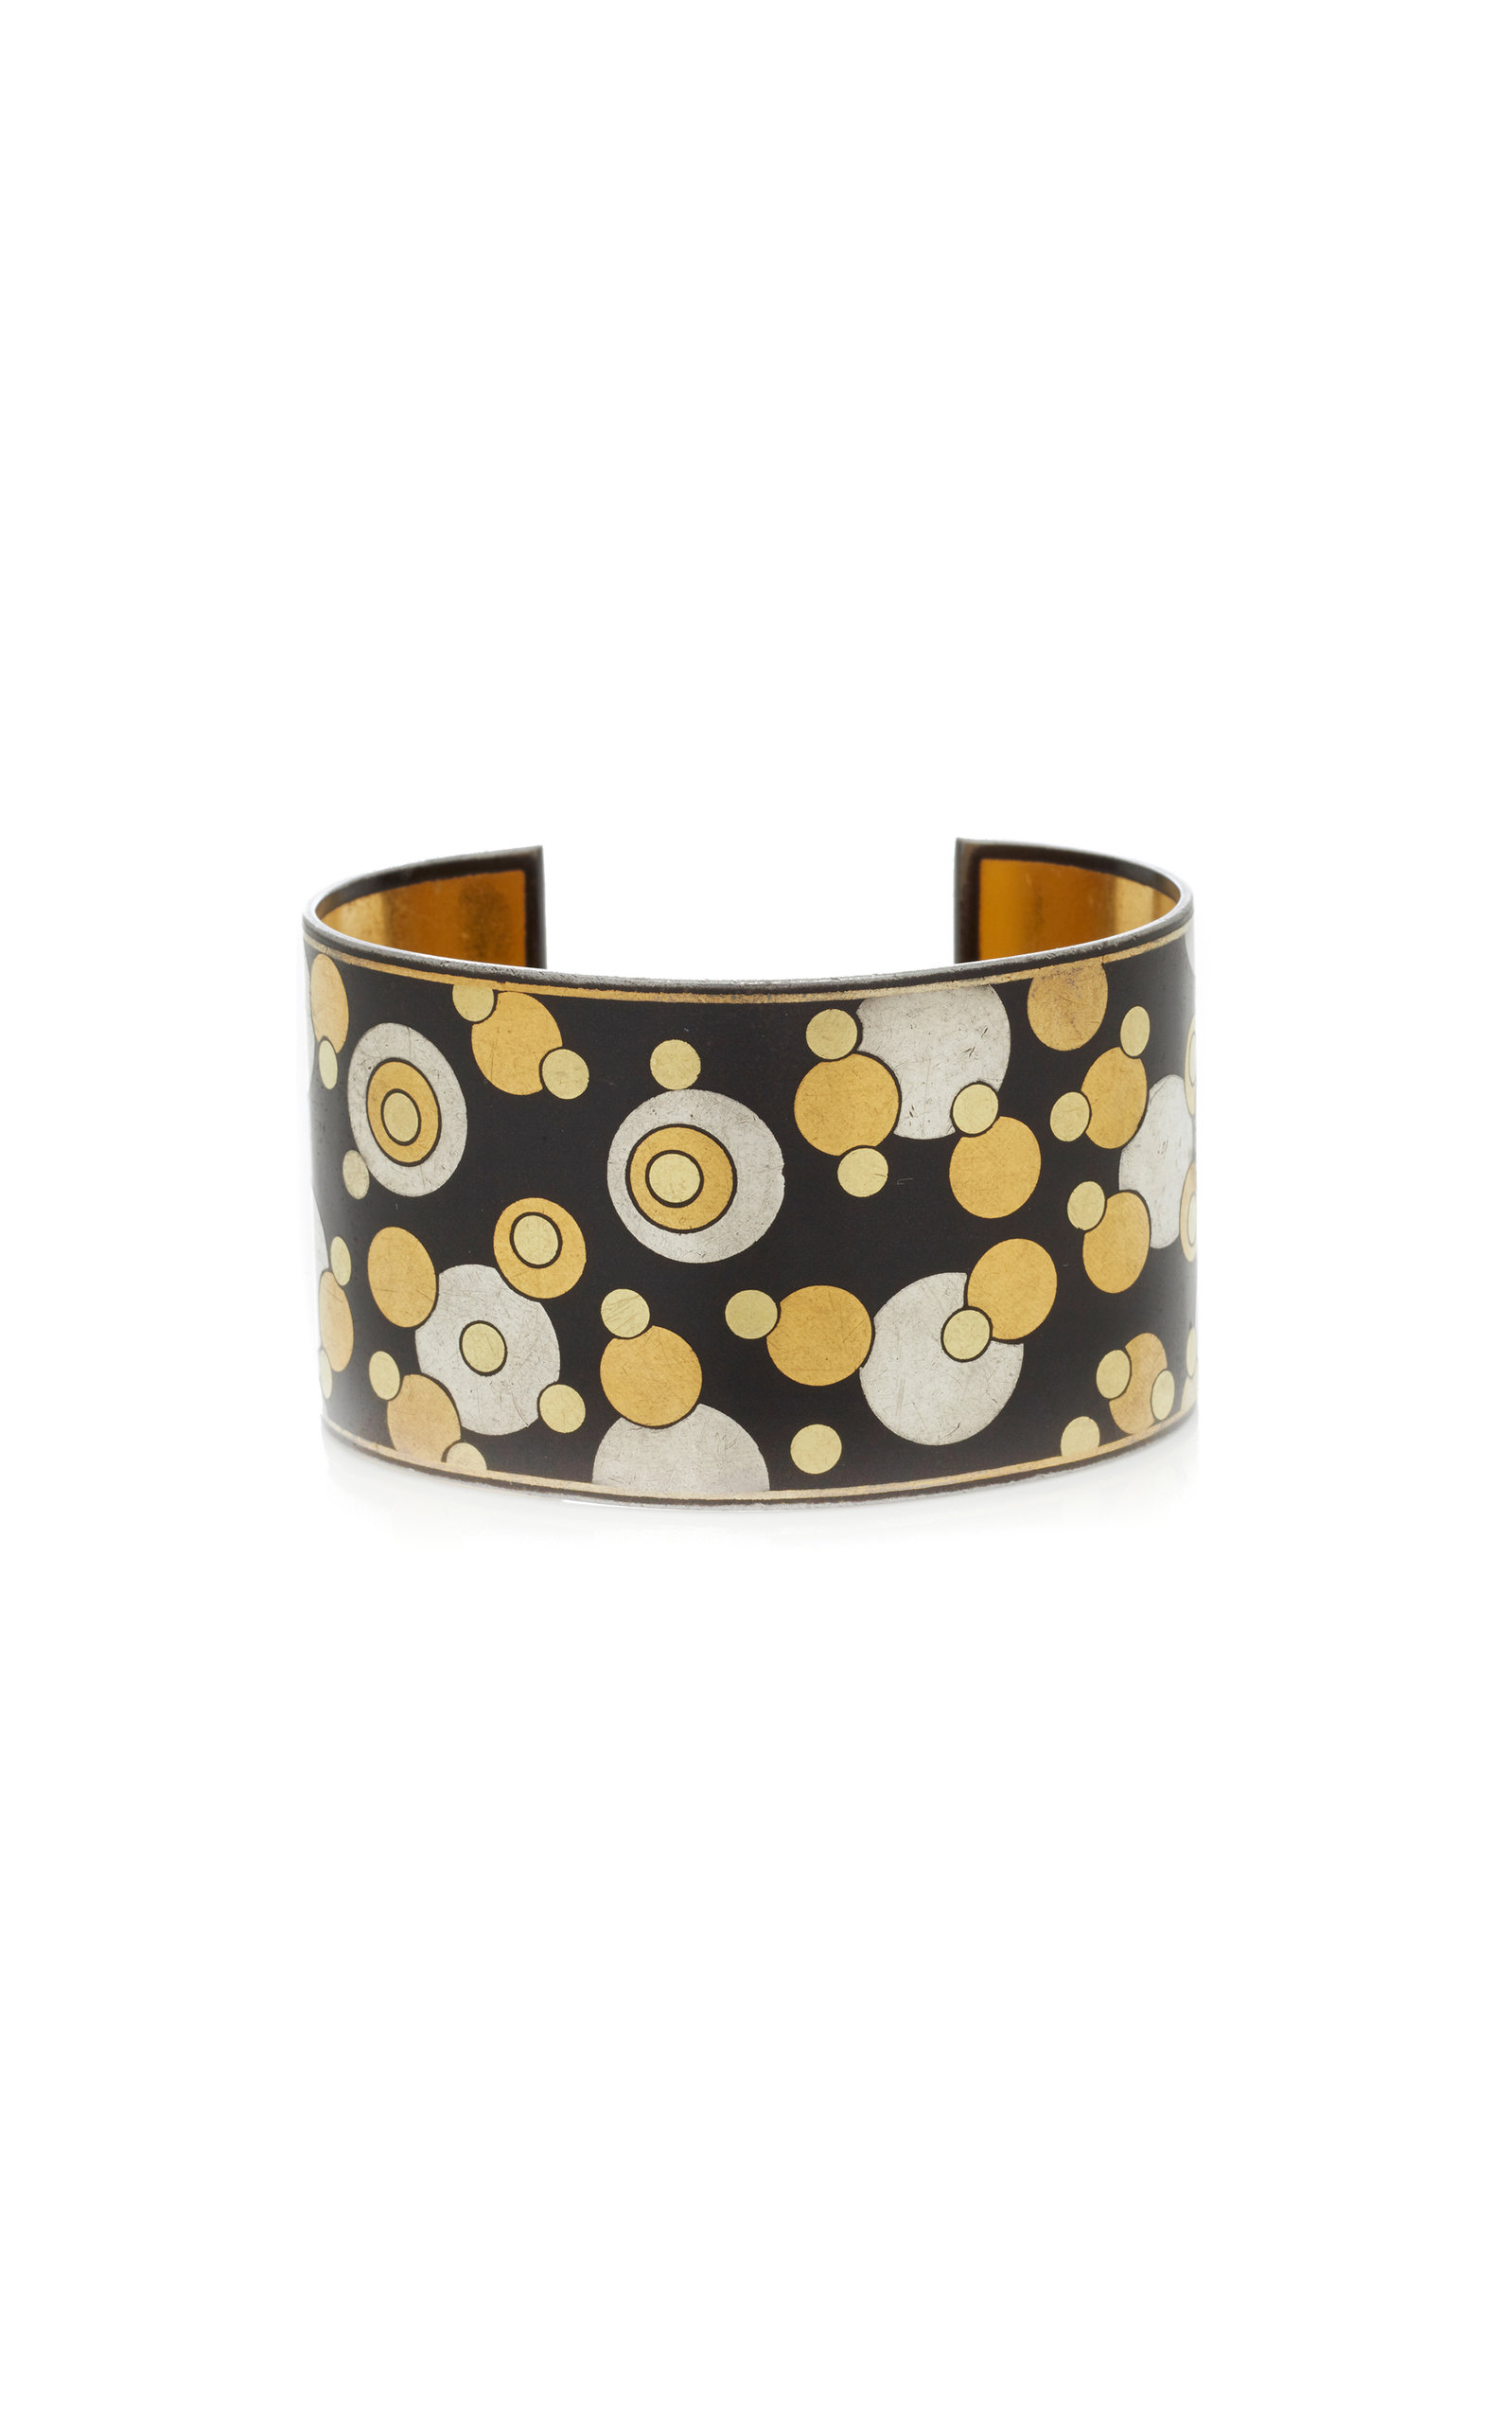 MAHNAZ COLLECTION ONE-OF-A-KIND BLACK IRON LACQUER GOLD INLAY BUBBLE CUFF BY ANGELA CUMMINGS FOR TIFFANY & CO. C. 1980